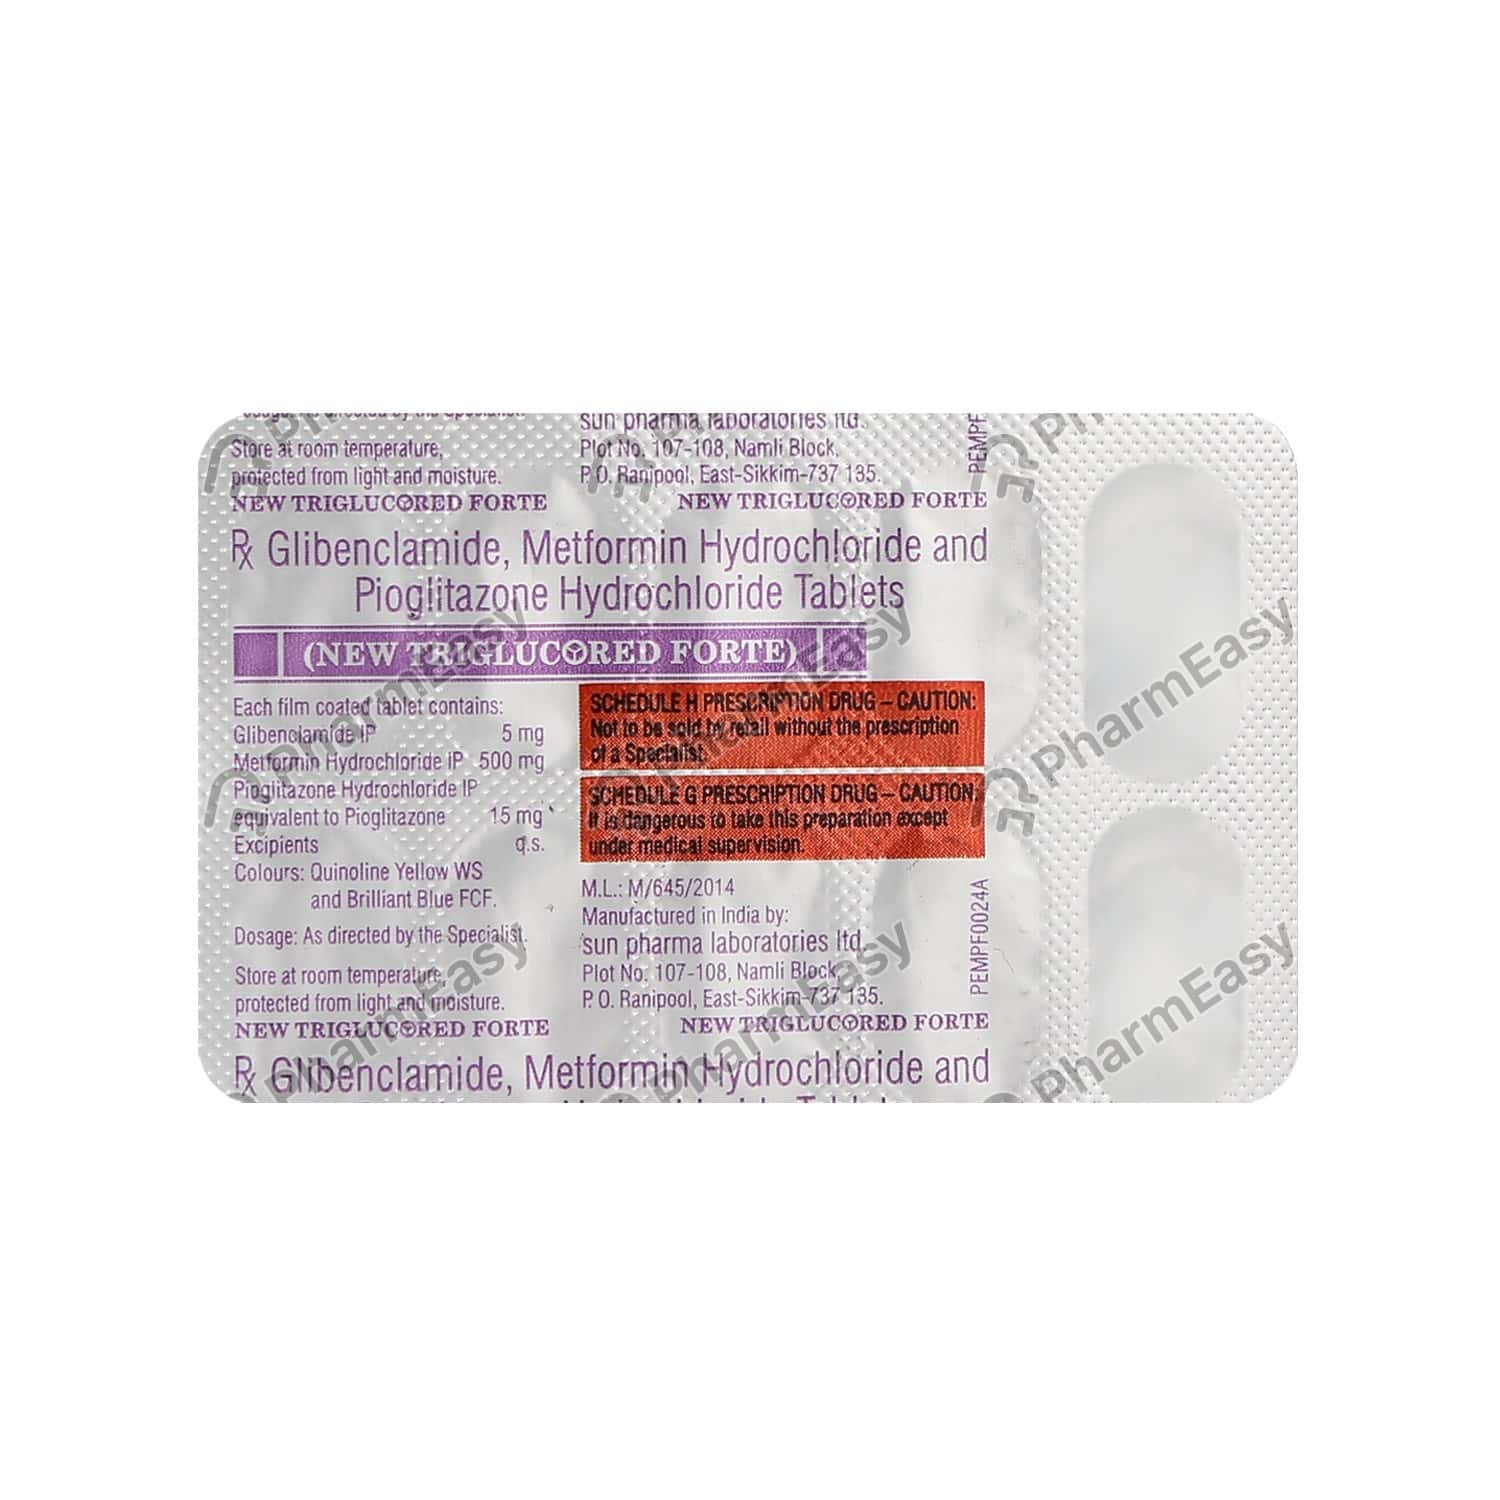 New Triglucored Forte Strip Of 10 Tablets